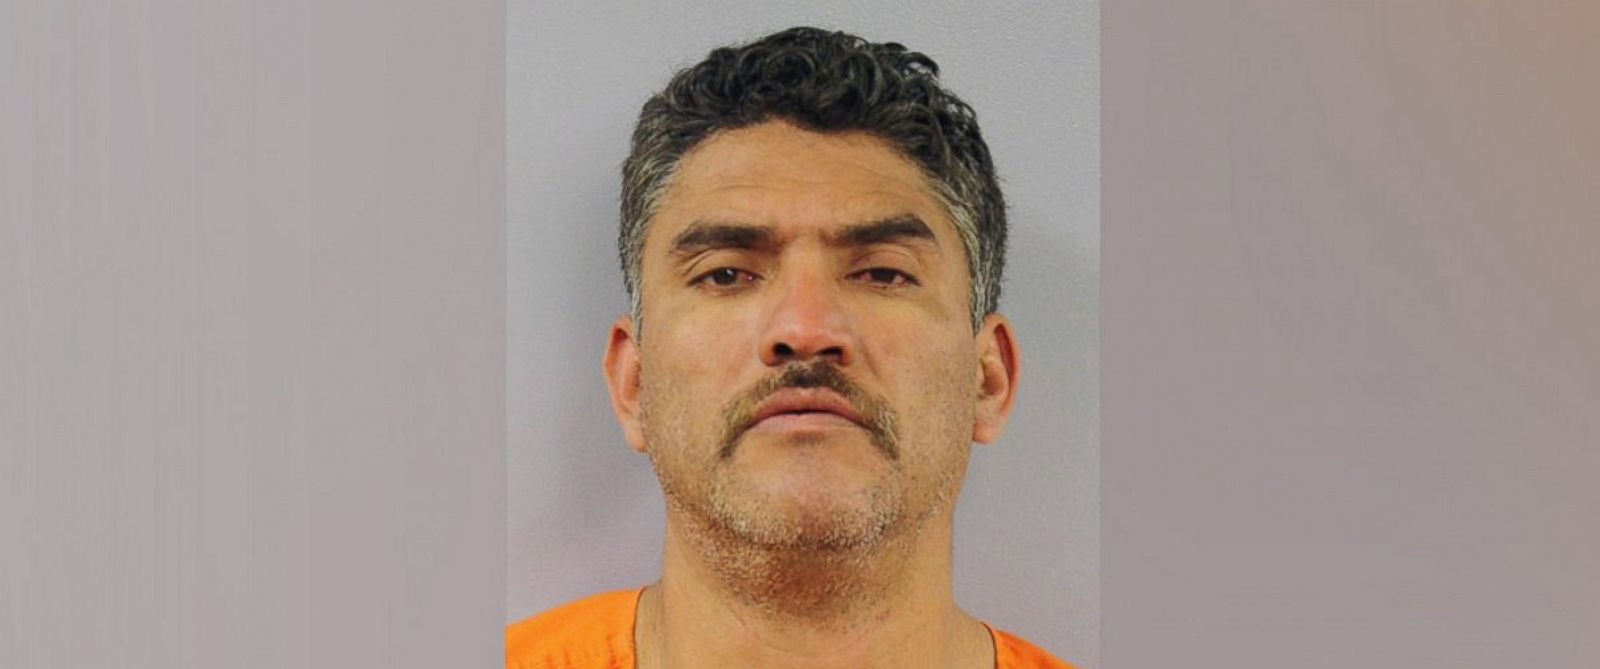 Pablo Serrano-Vitorino, the Mexican national suspected of killing his neighbor and three other men at his neighbors Kansas home before killing another man about 170 miles away in Missouri, was arrested on March 9, 2016.